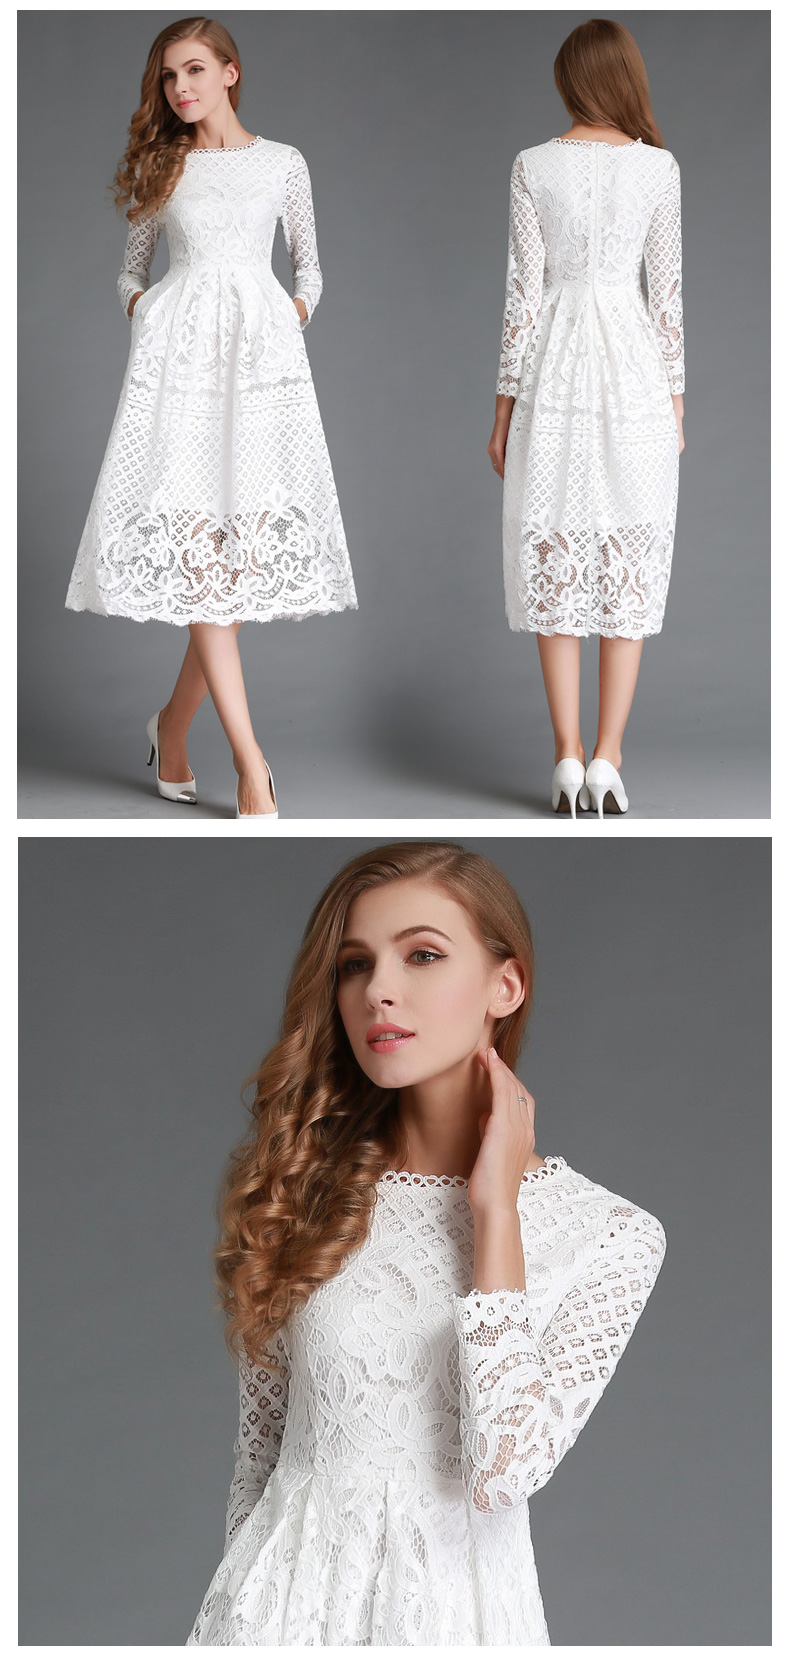 High Quality Hollow out Elegant White Lace Dress Women ...